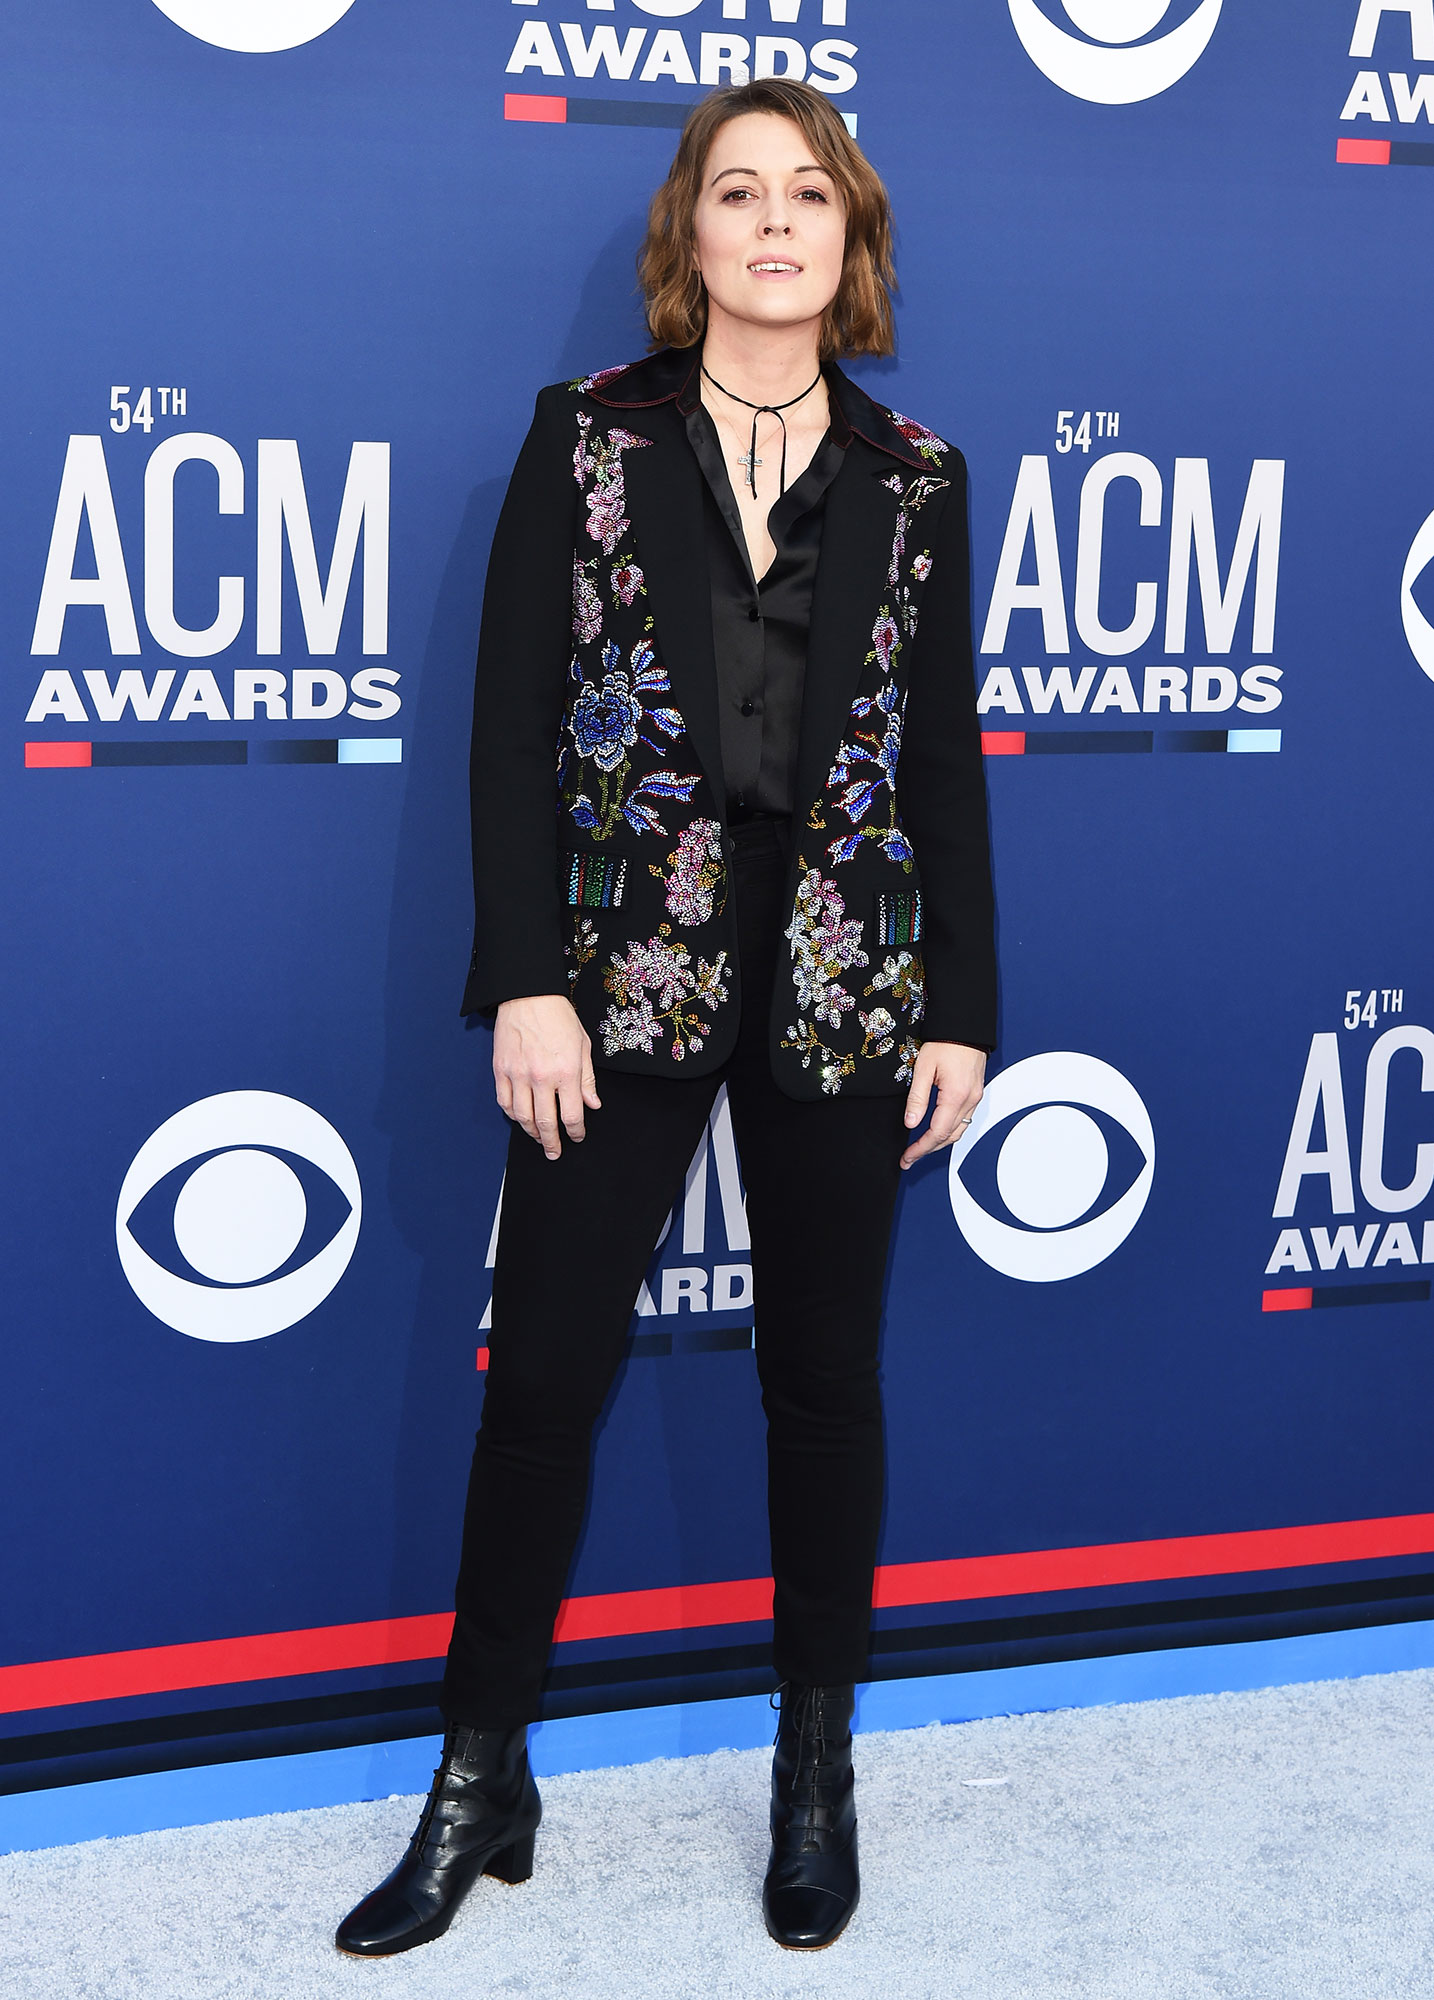 Brandi Carlile The Best Looks From the Country Music Awards Red Carpet - In an embroidered flower jacket, the Grammy Award winner looked sleek in a skinny black pant, boots and blouse combo.